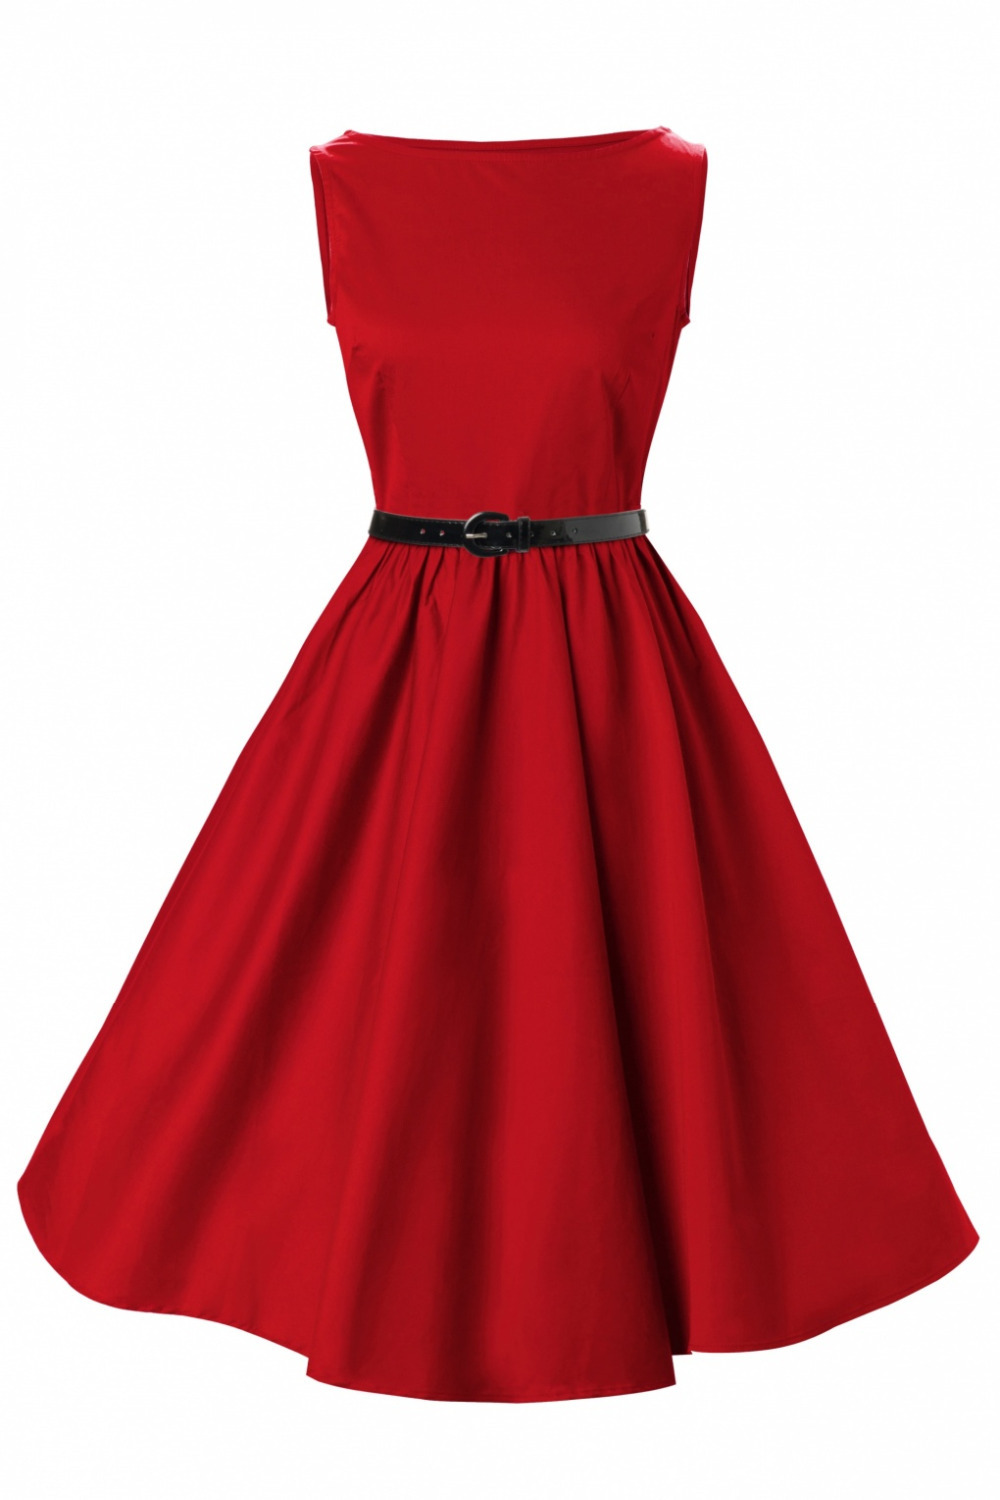 Popular Cotton Red Dress-Buy Cheap Cotton Red Dress lots from ...